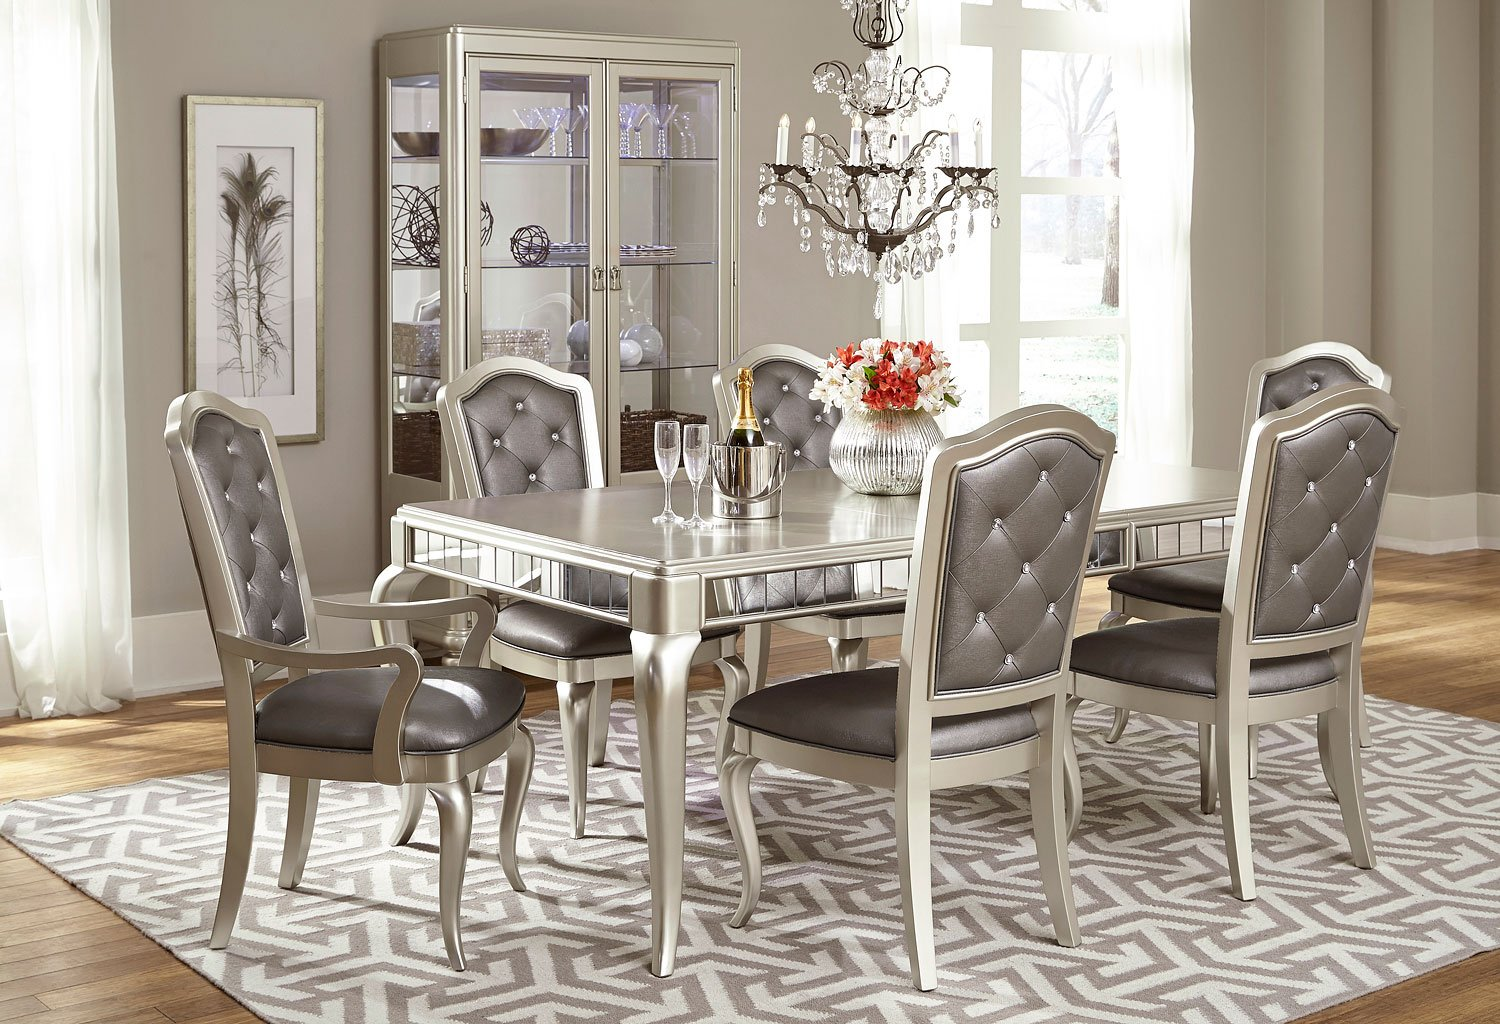 Diva Dining Room Set Samuel Lawrence Furniture 2 Reviews Furniture Cart